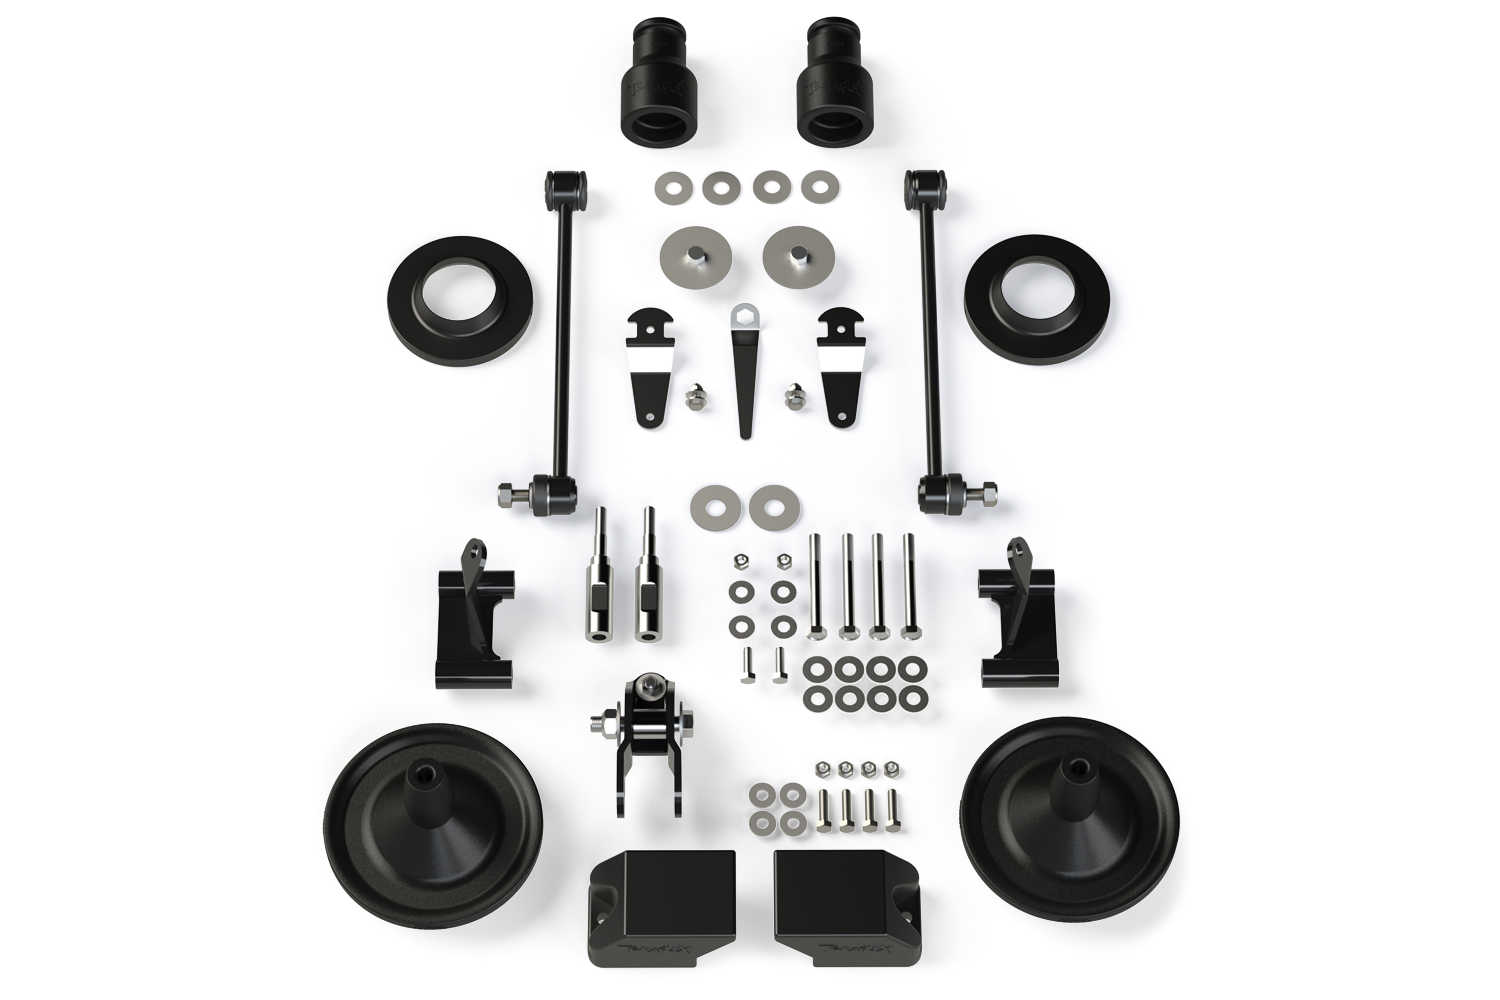 Teraflex Suspension 2.5in Budget Boost Lift Kit w/ Shock Extensions  - JK